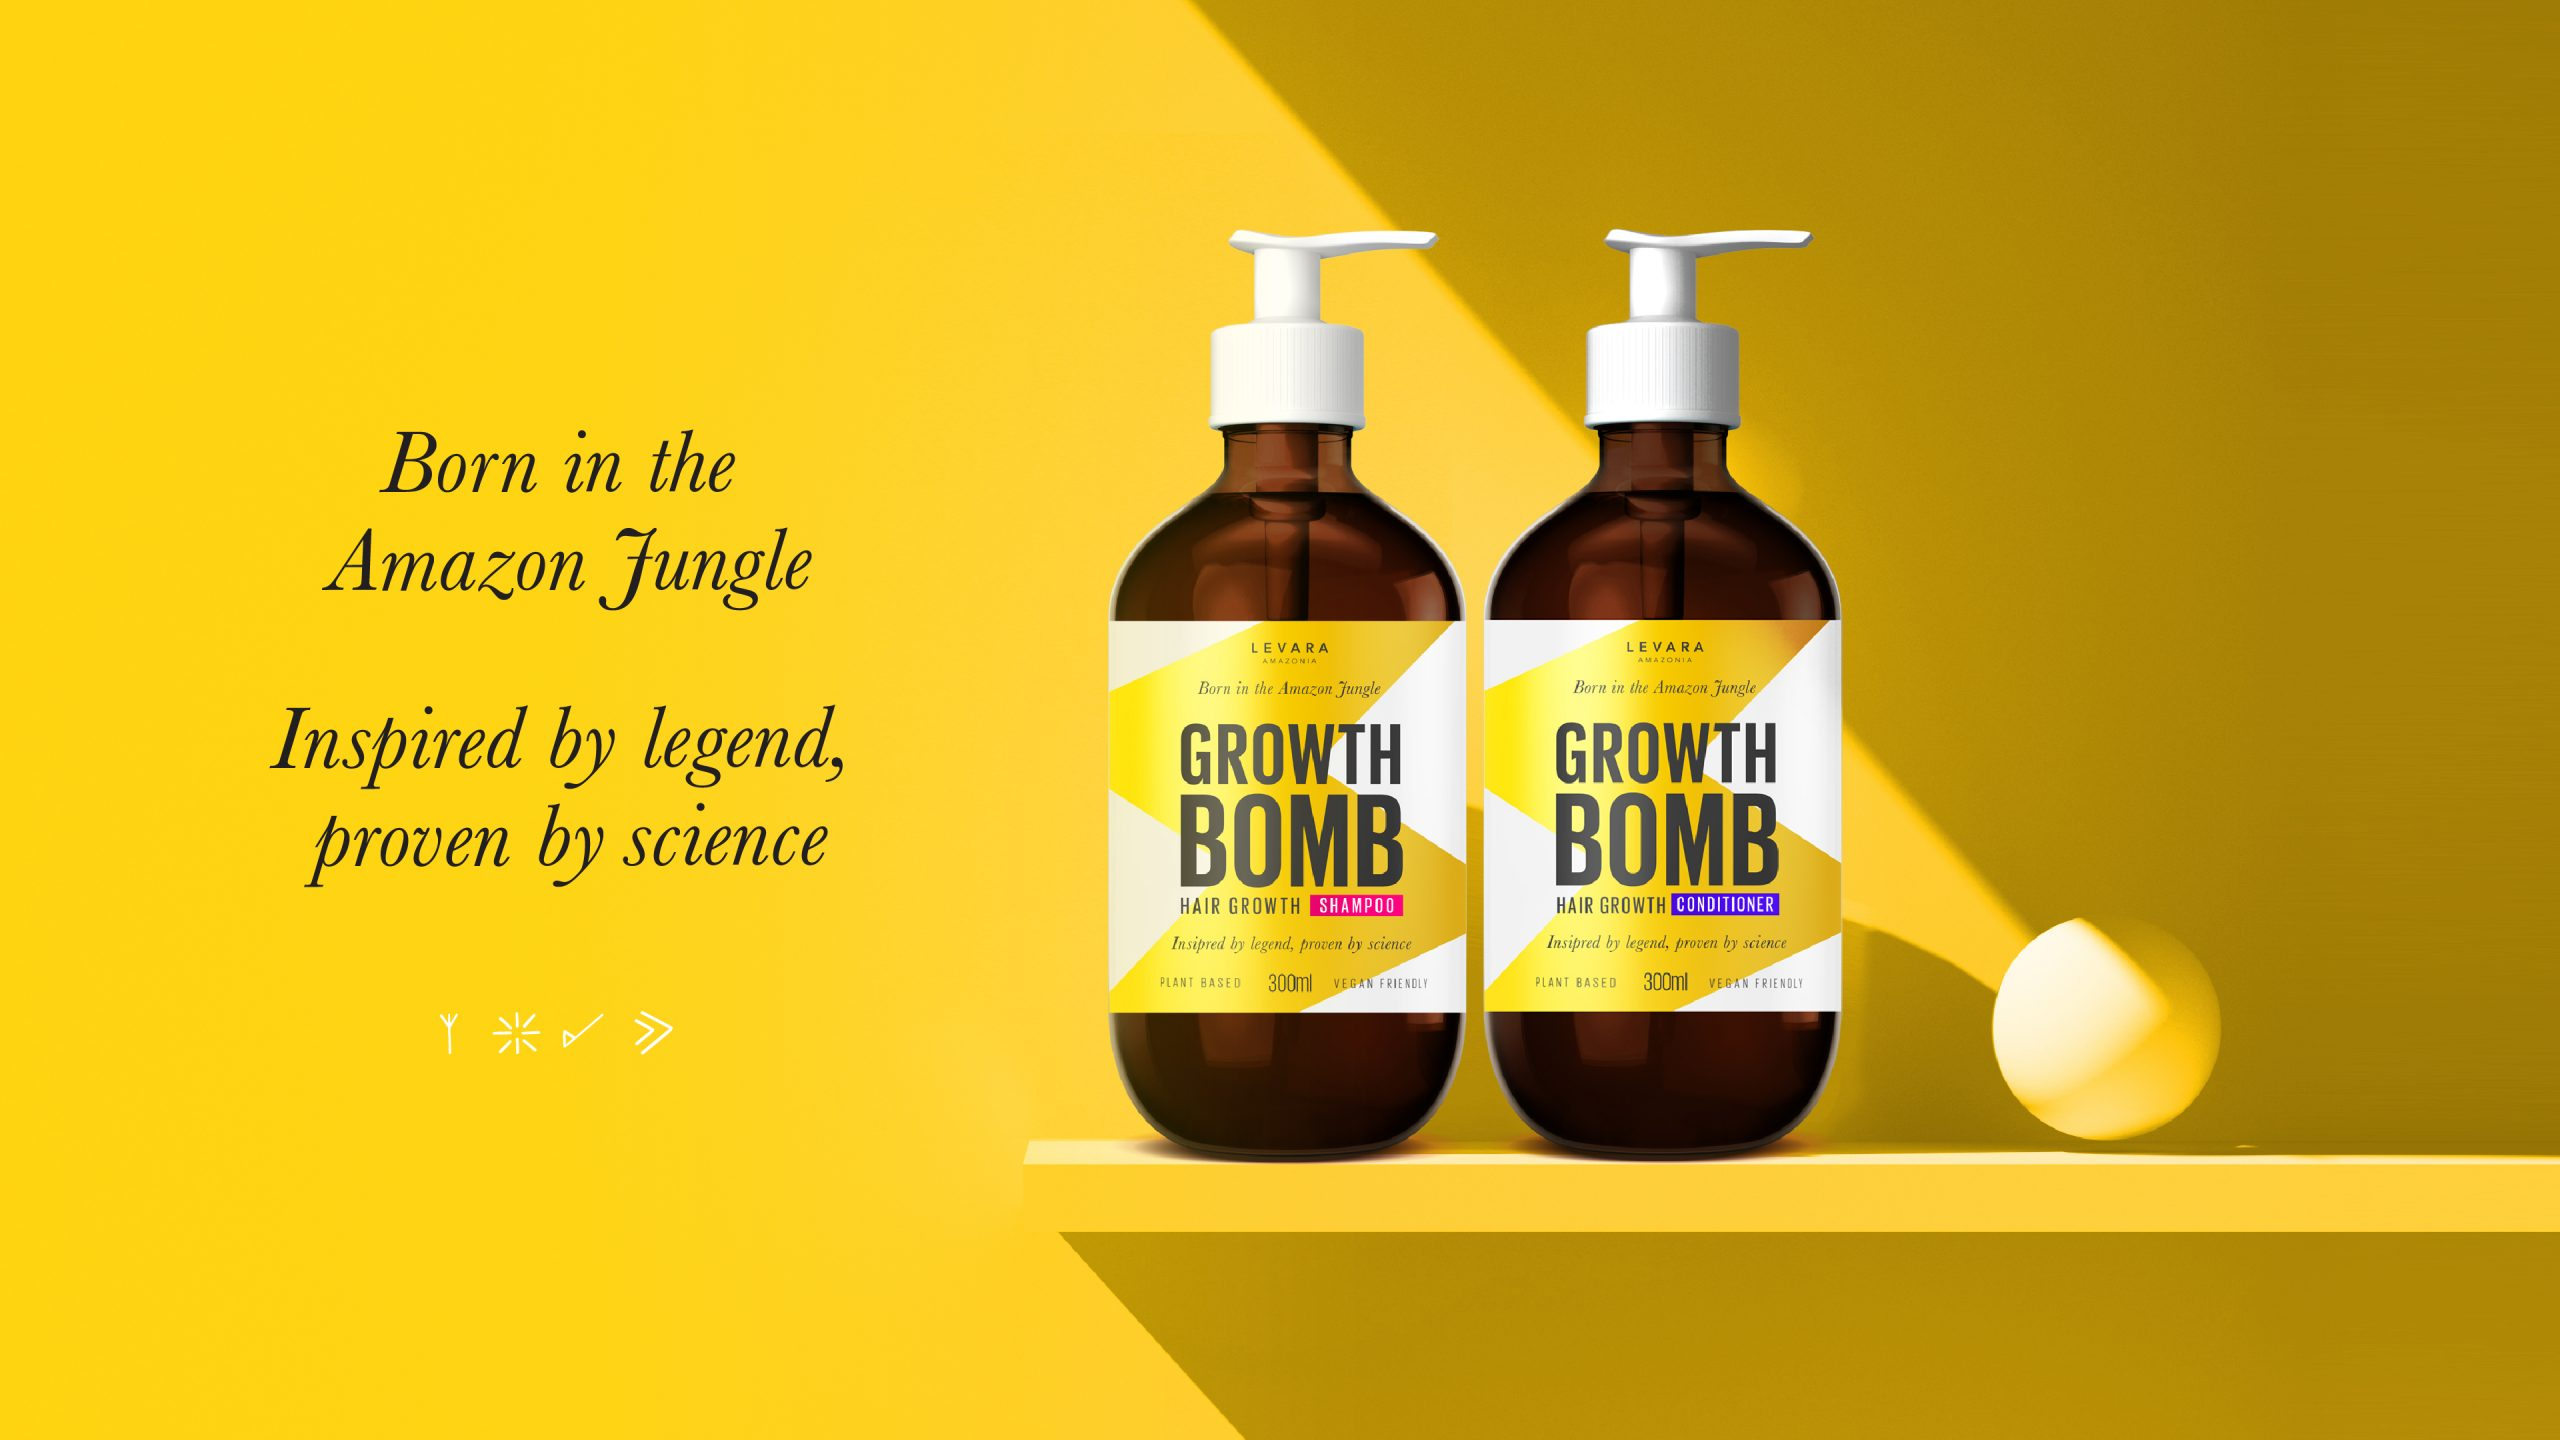 Growth Bomb Har Growth Shampoo Packaging sitting on a shelf in a yellow room setting. Branding and pack design by Helium Design Melbourne.